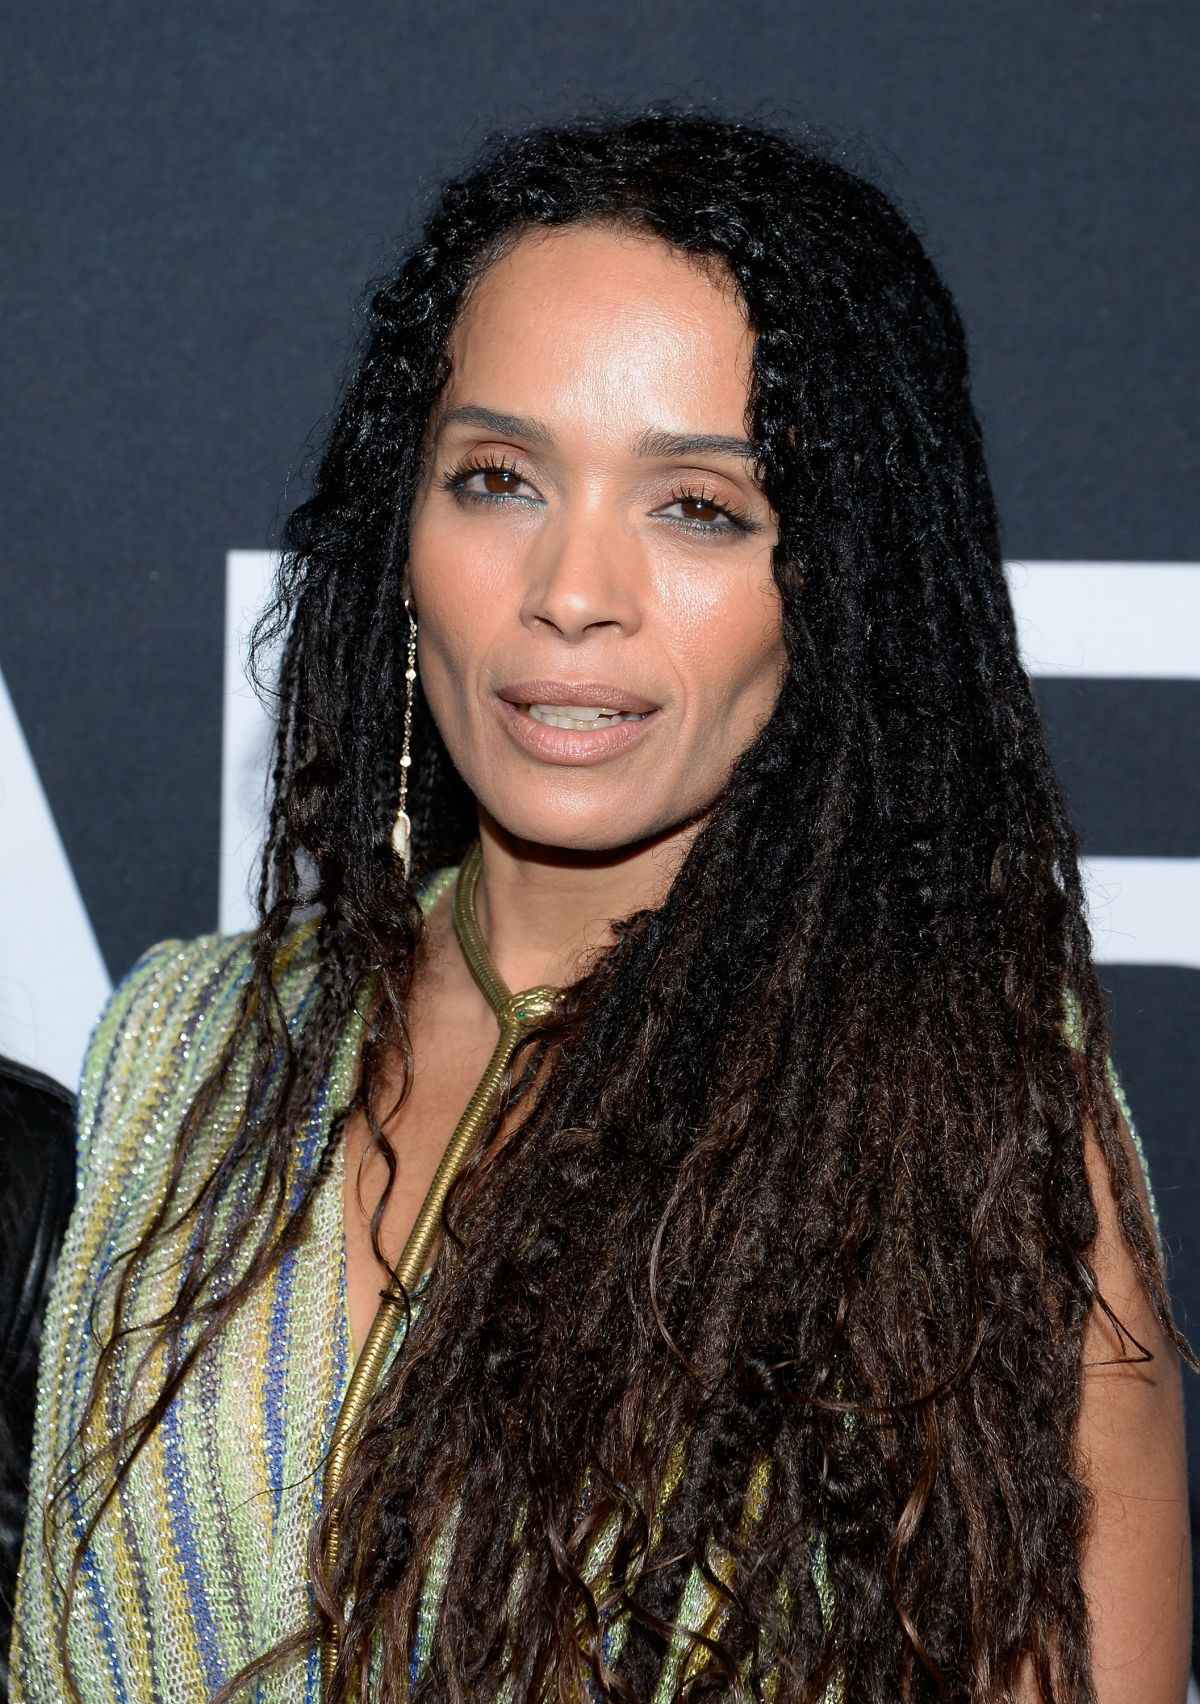 Lisa Bonet earned a  million dollar salary, leaving the net worth at 10 million in 2017